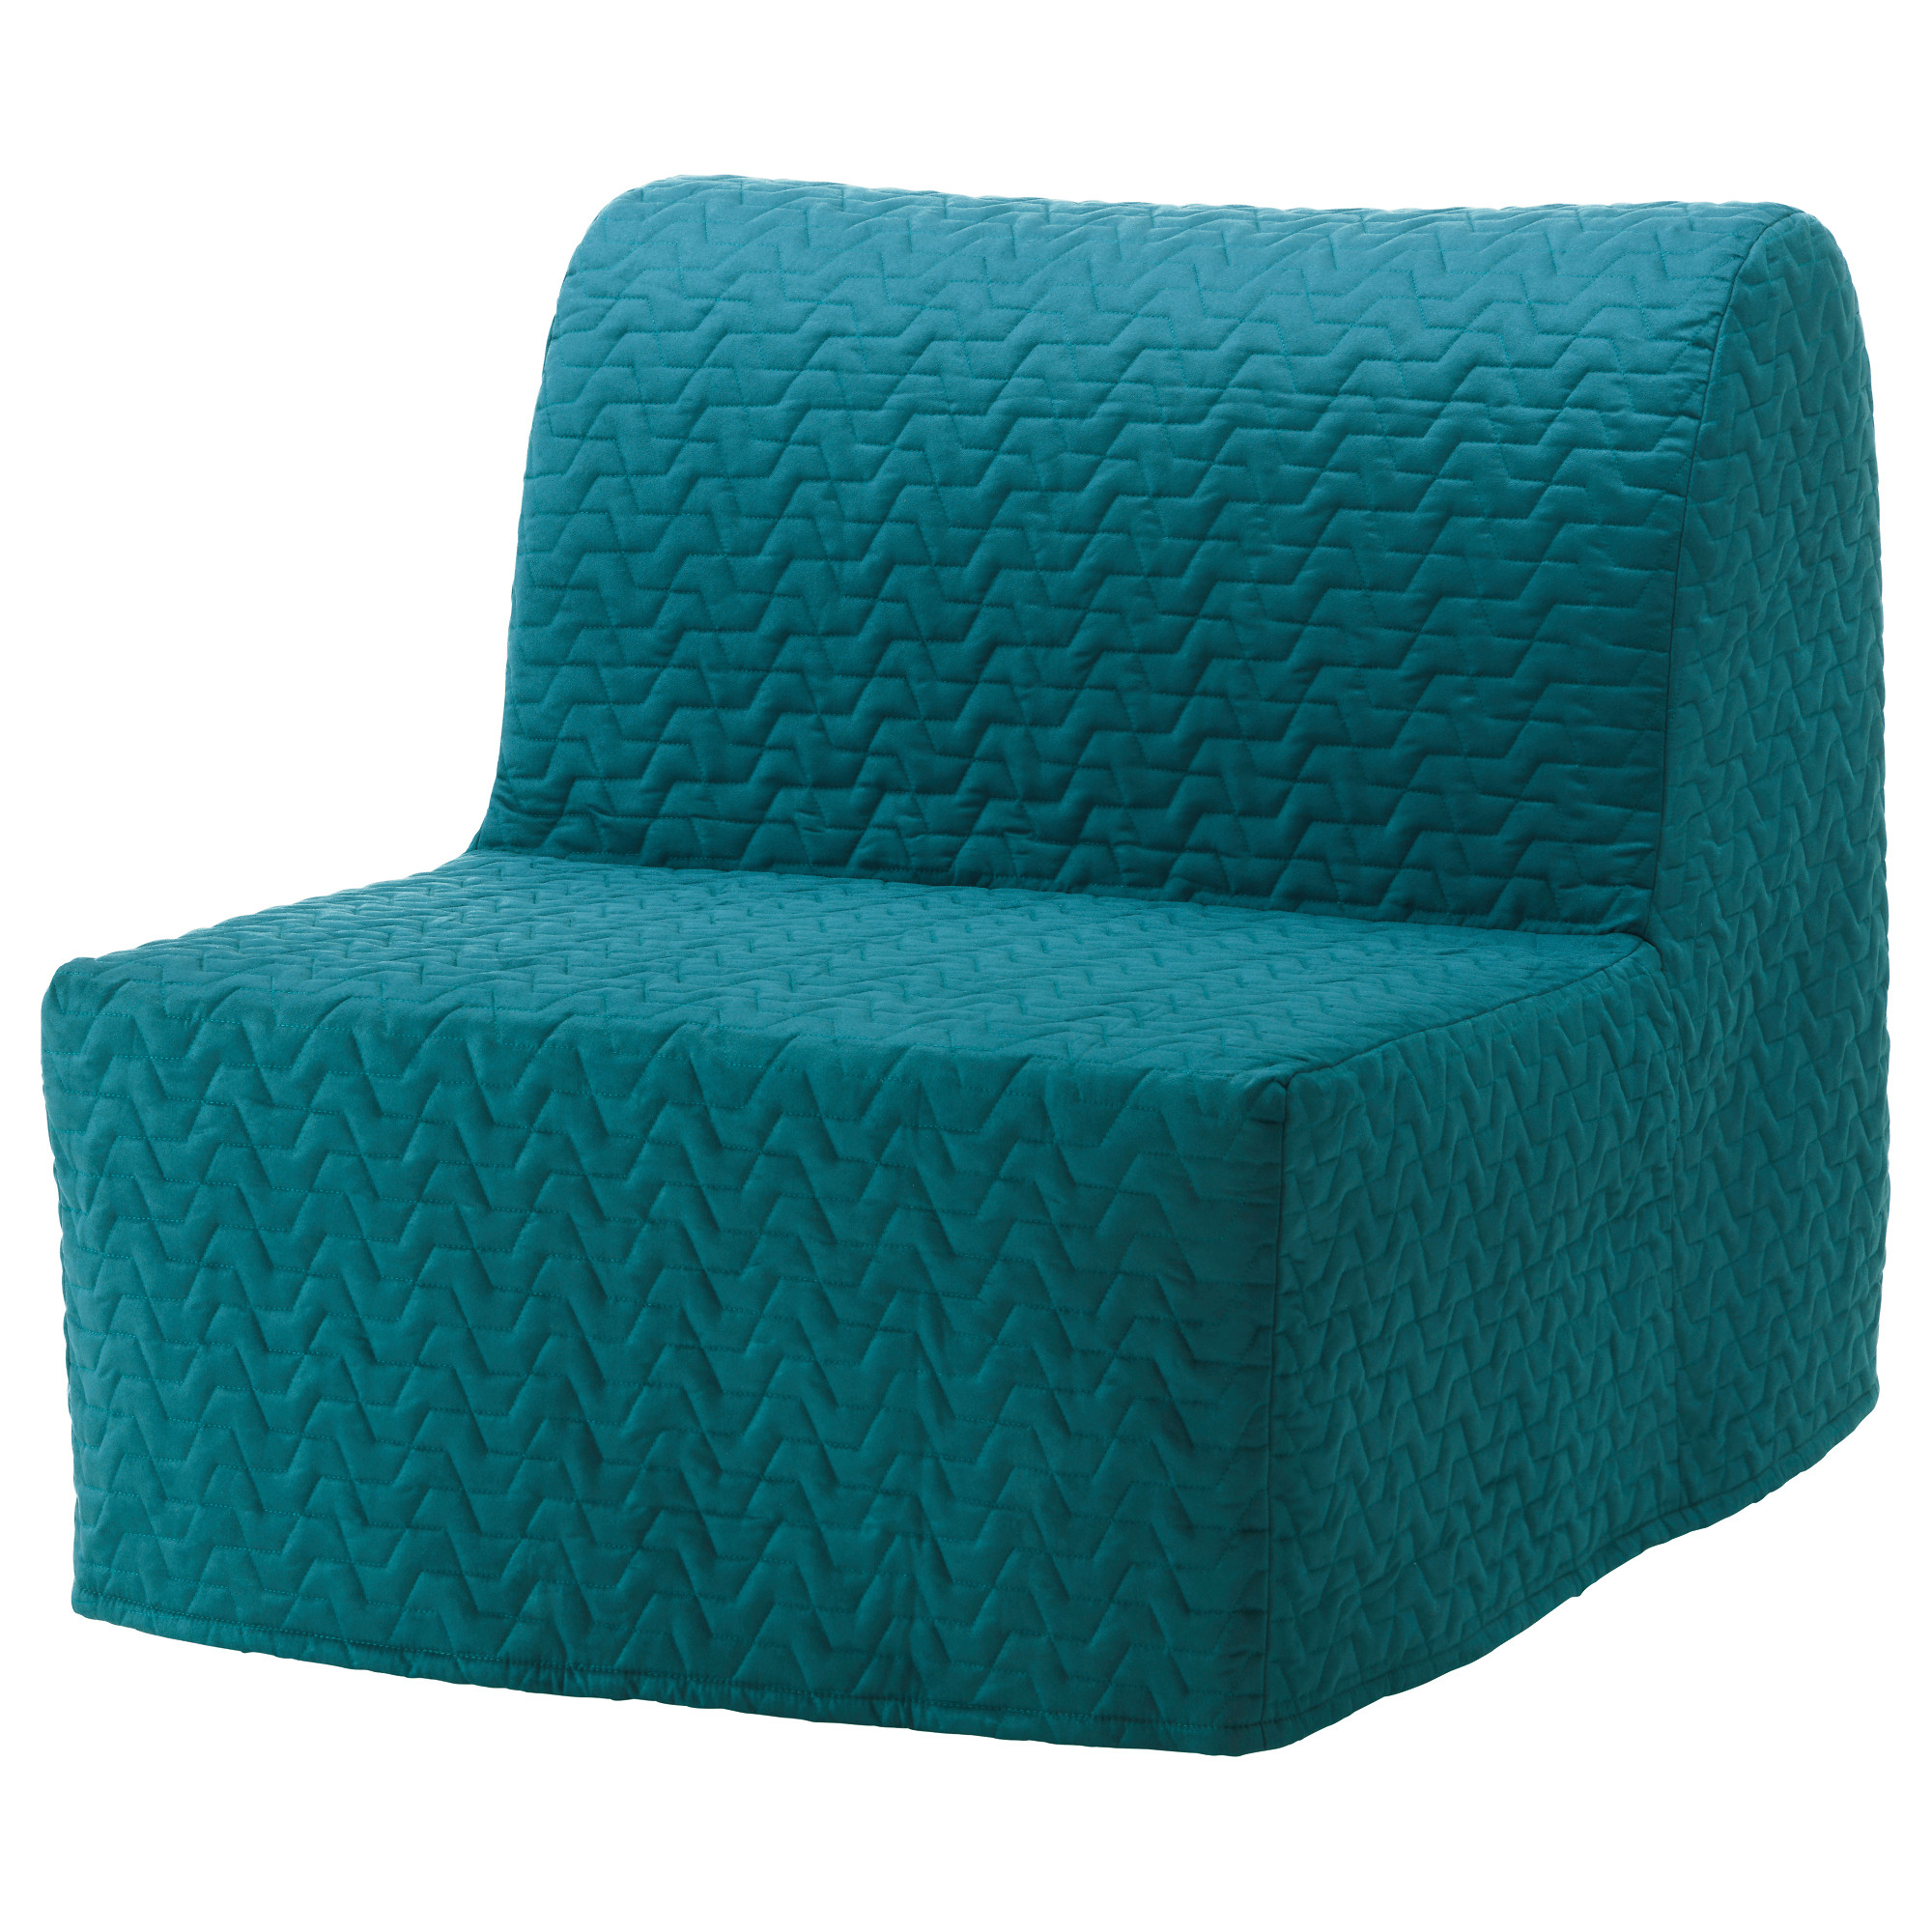 Lycksele Murbo Chair-Bed - Vallarum Turquoise | Chair Bed ... encequiconcerne Futon 1 Place Ikea